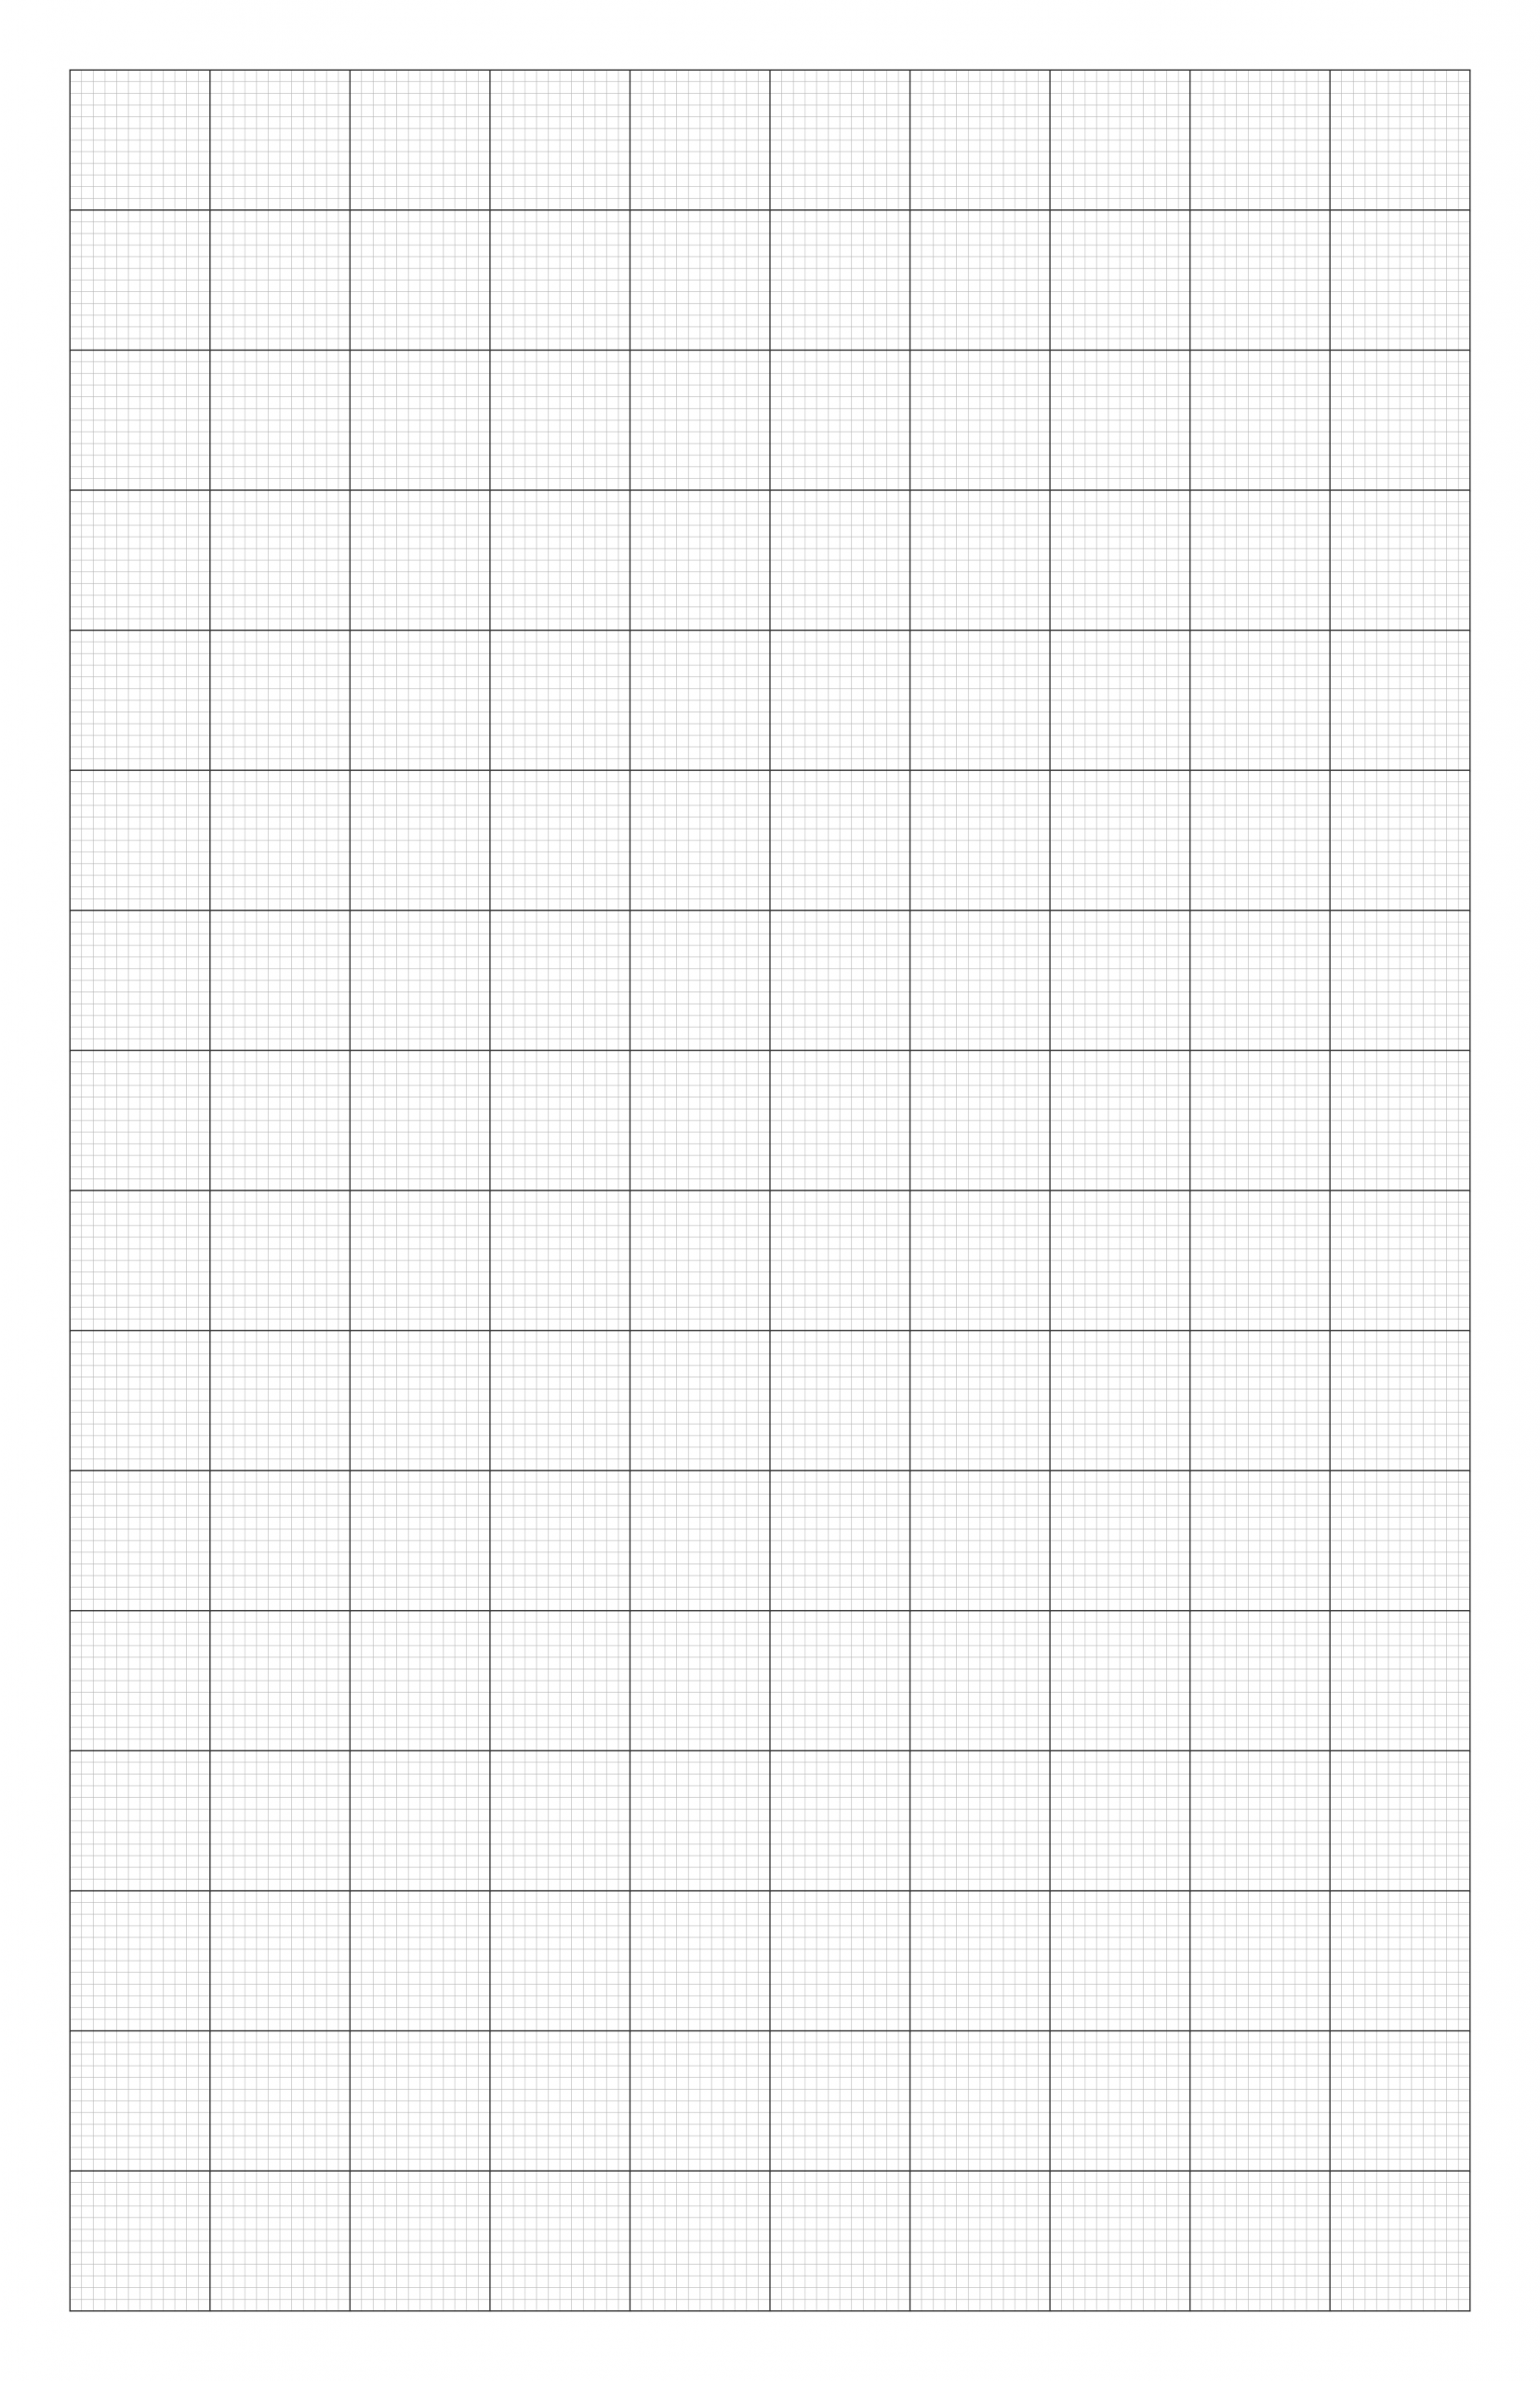 Free Online Graph Paper / Grid-Lined